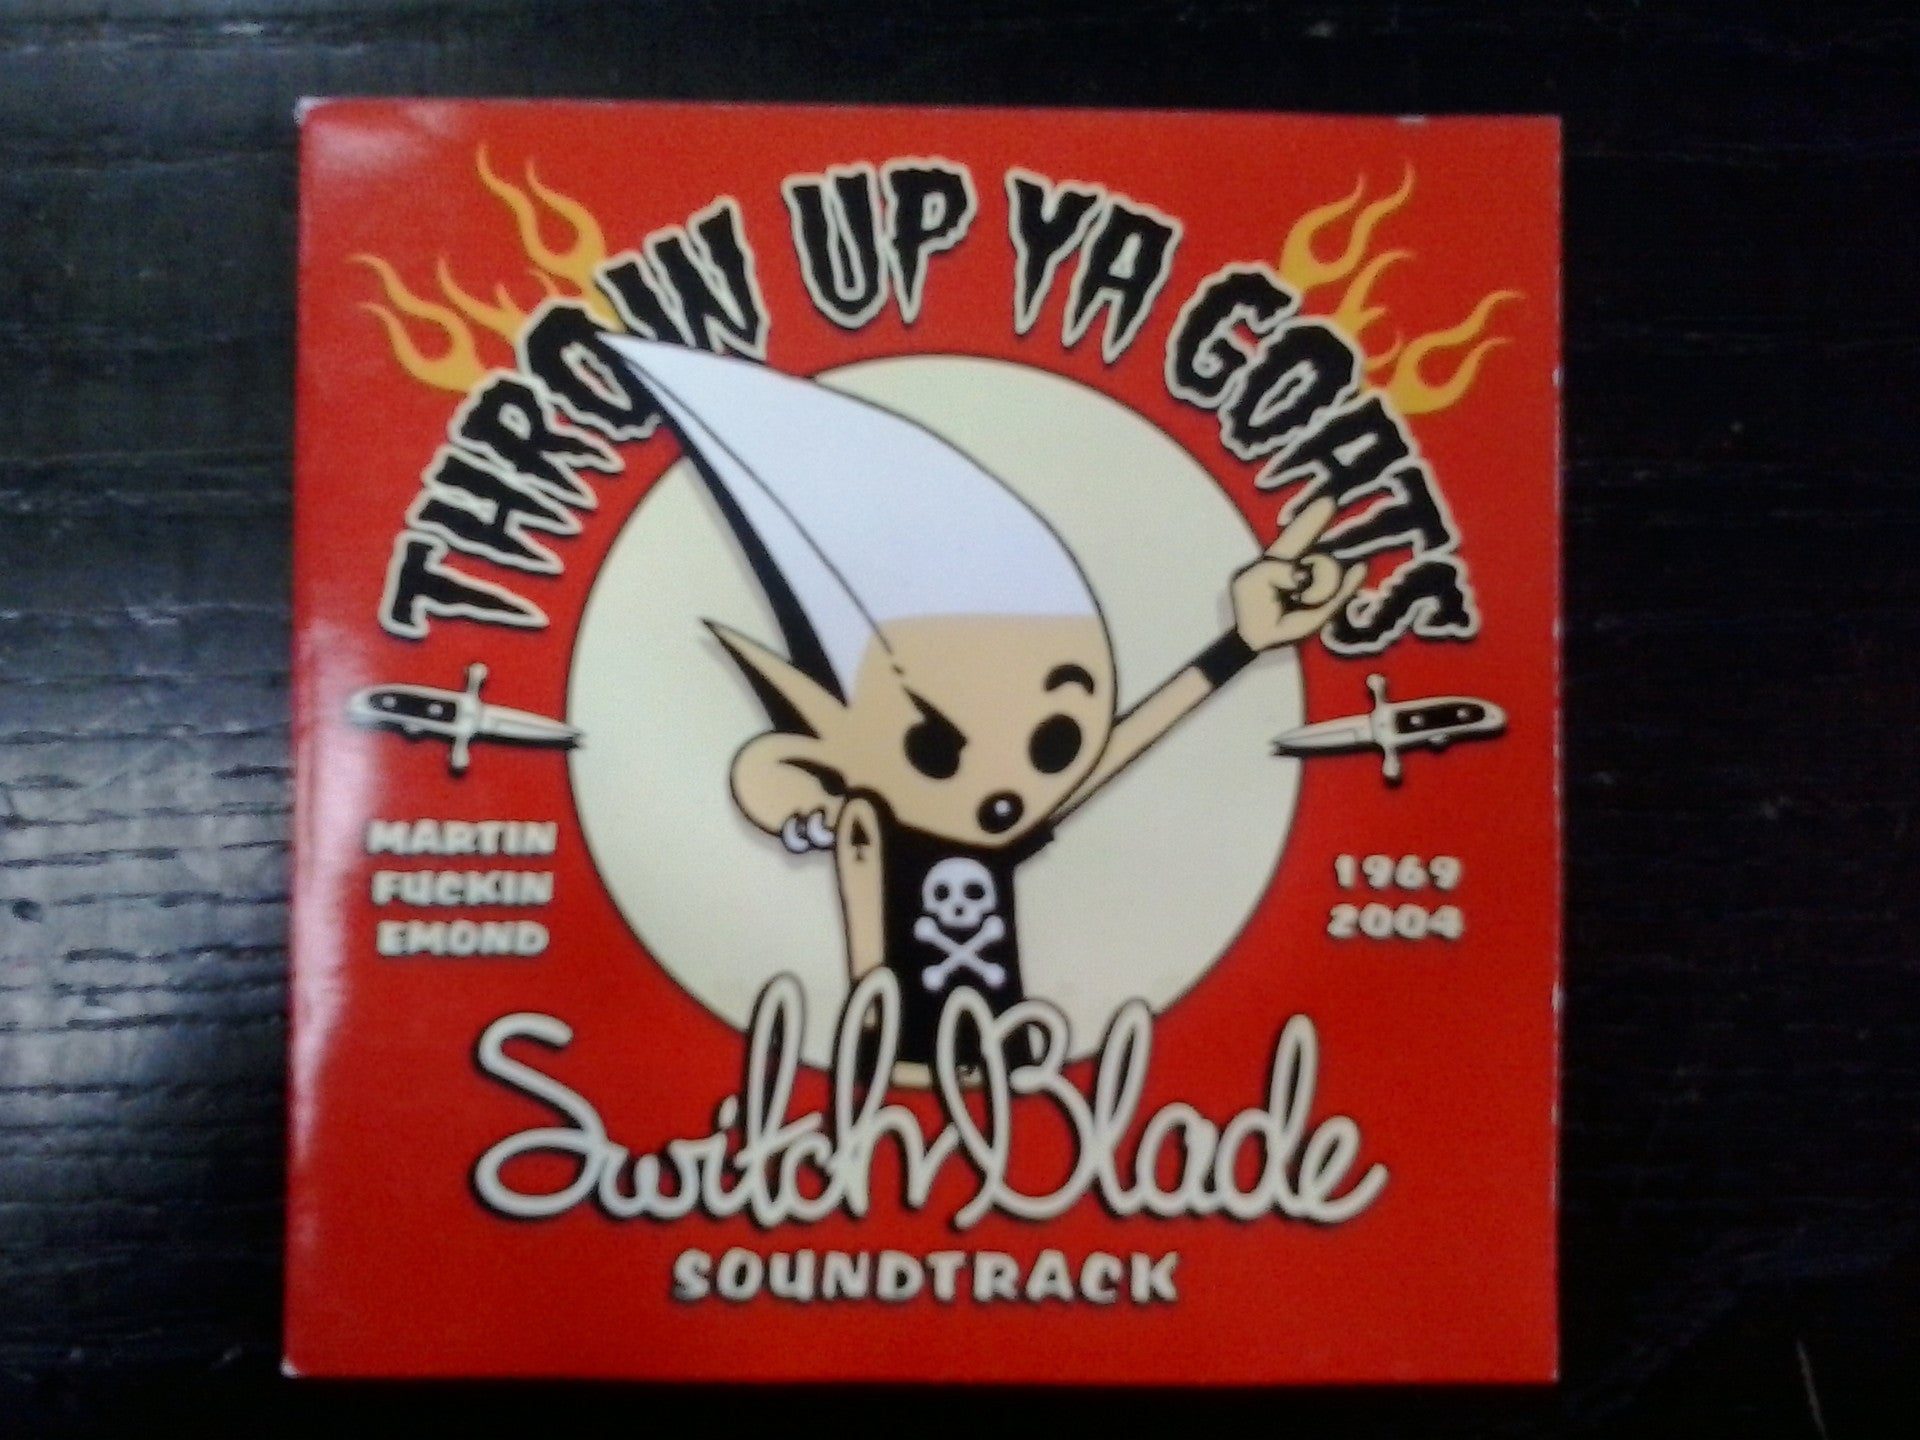 SWITCHBLADE SOUNDTRACK-THROW UP YA GOATS-VARIOUS CD G